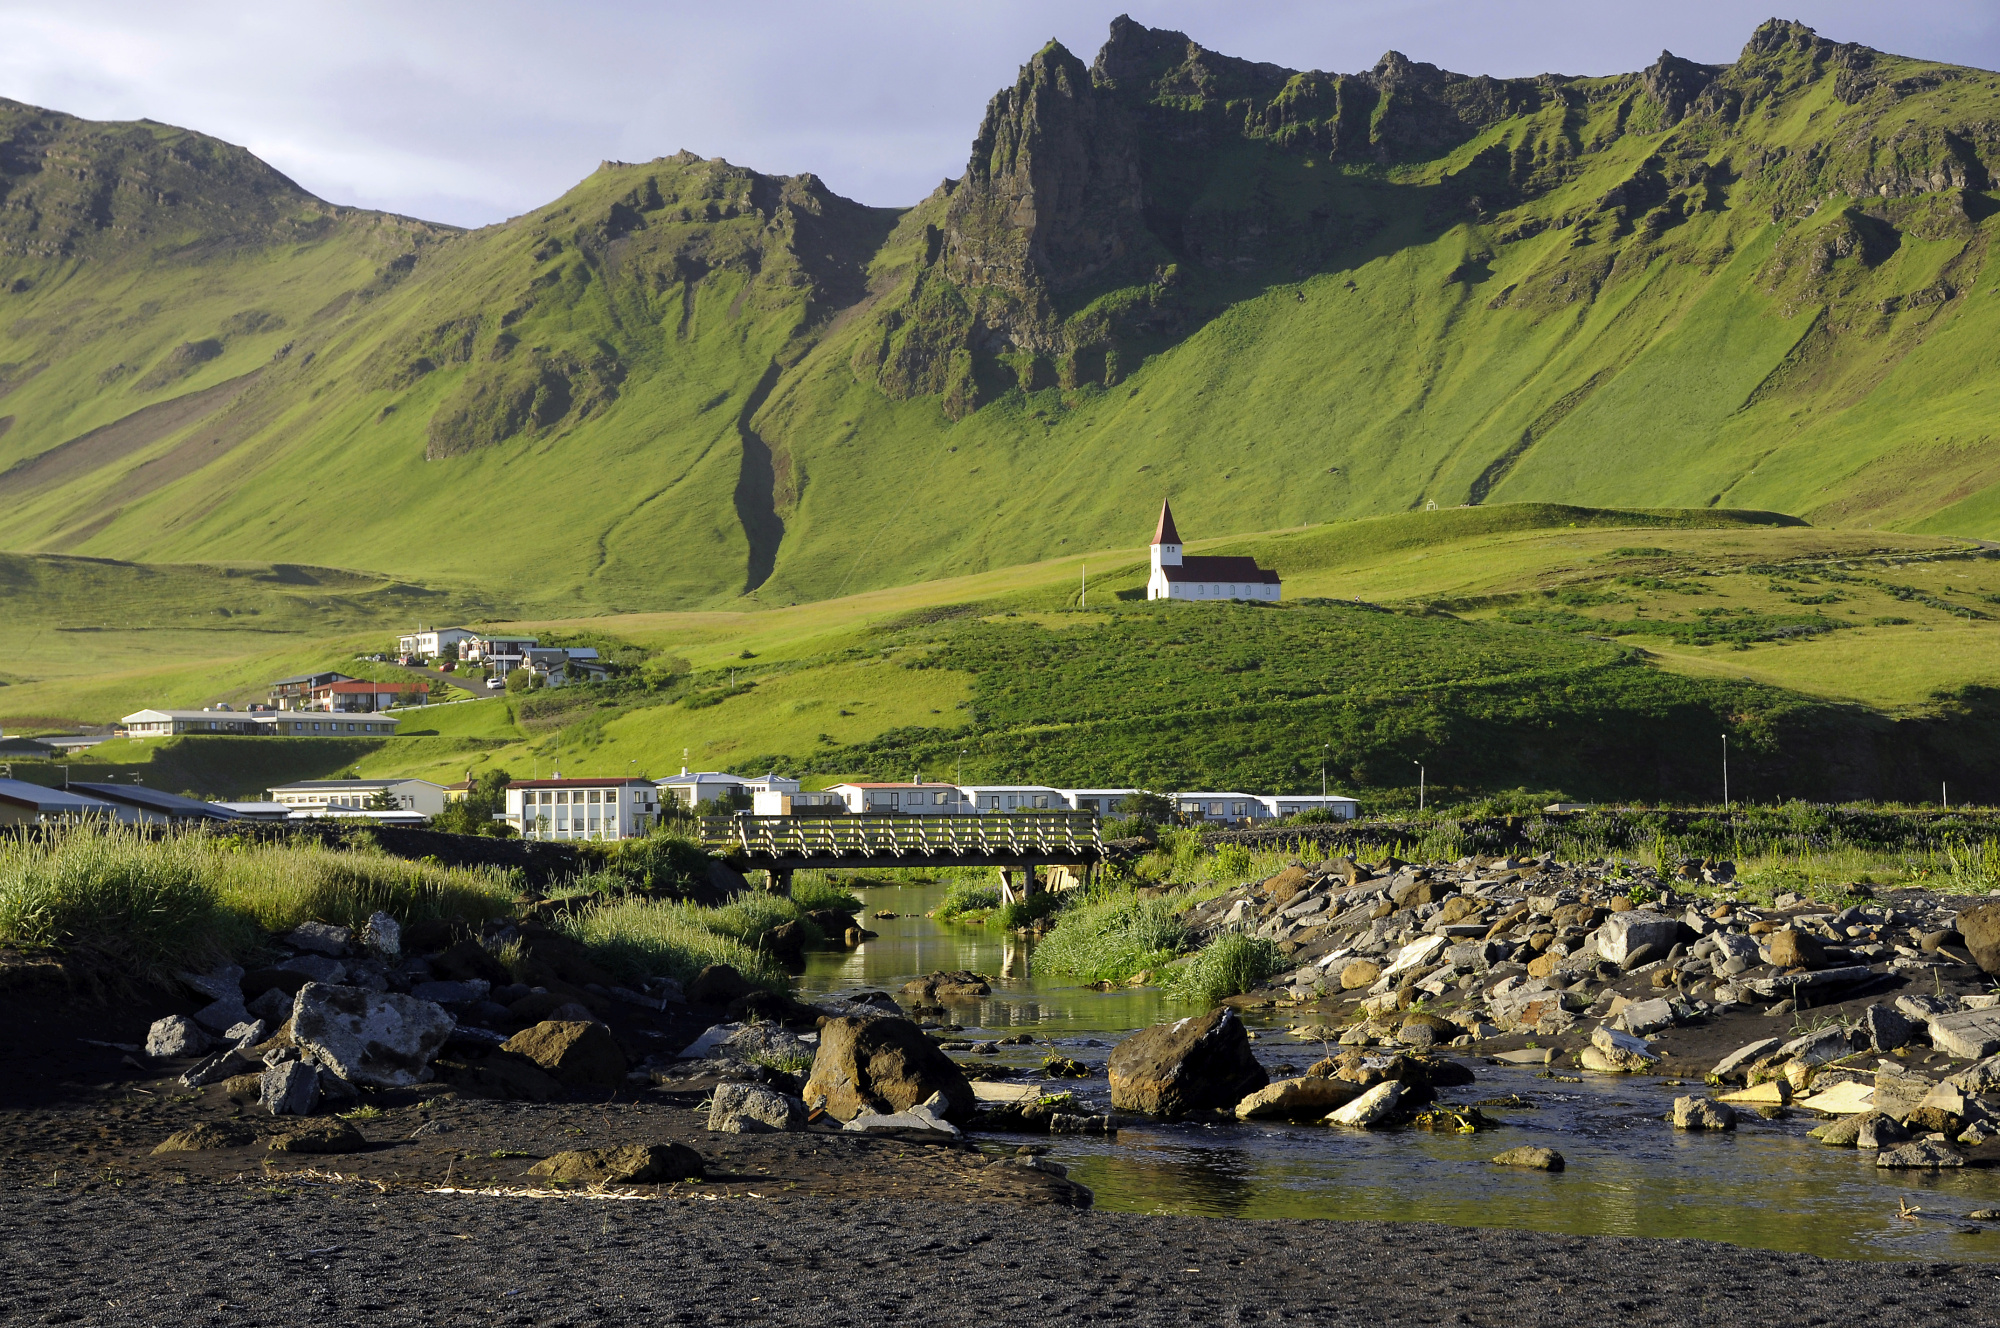 The town of Vik in Iceland: What to see and do?